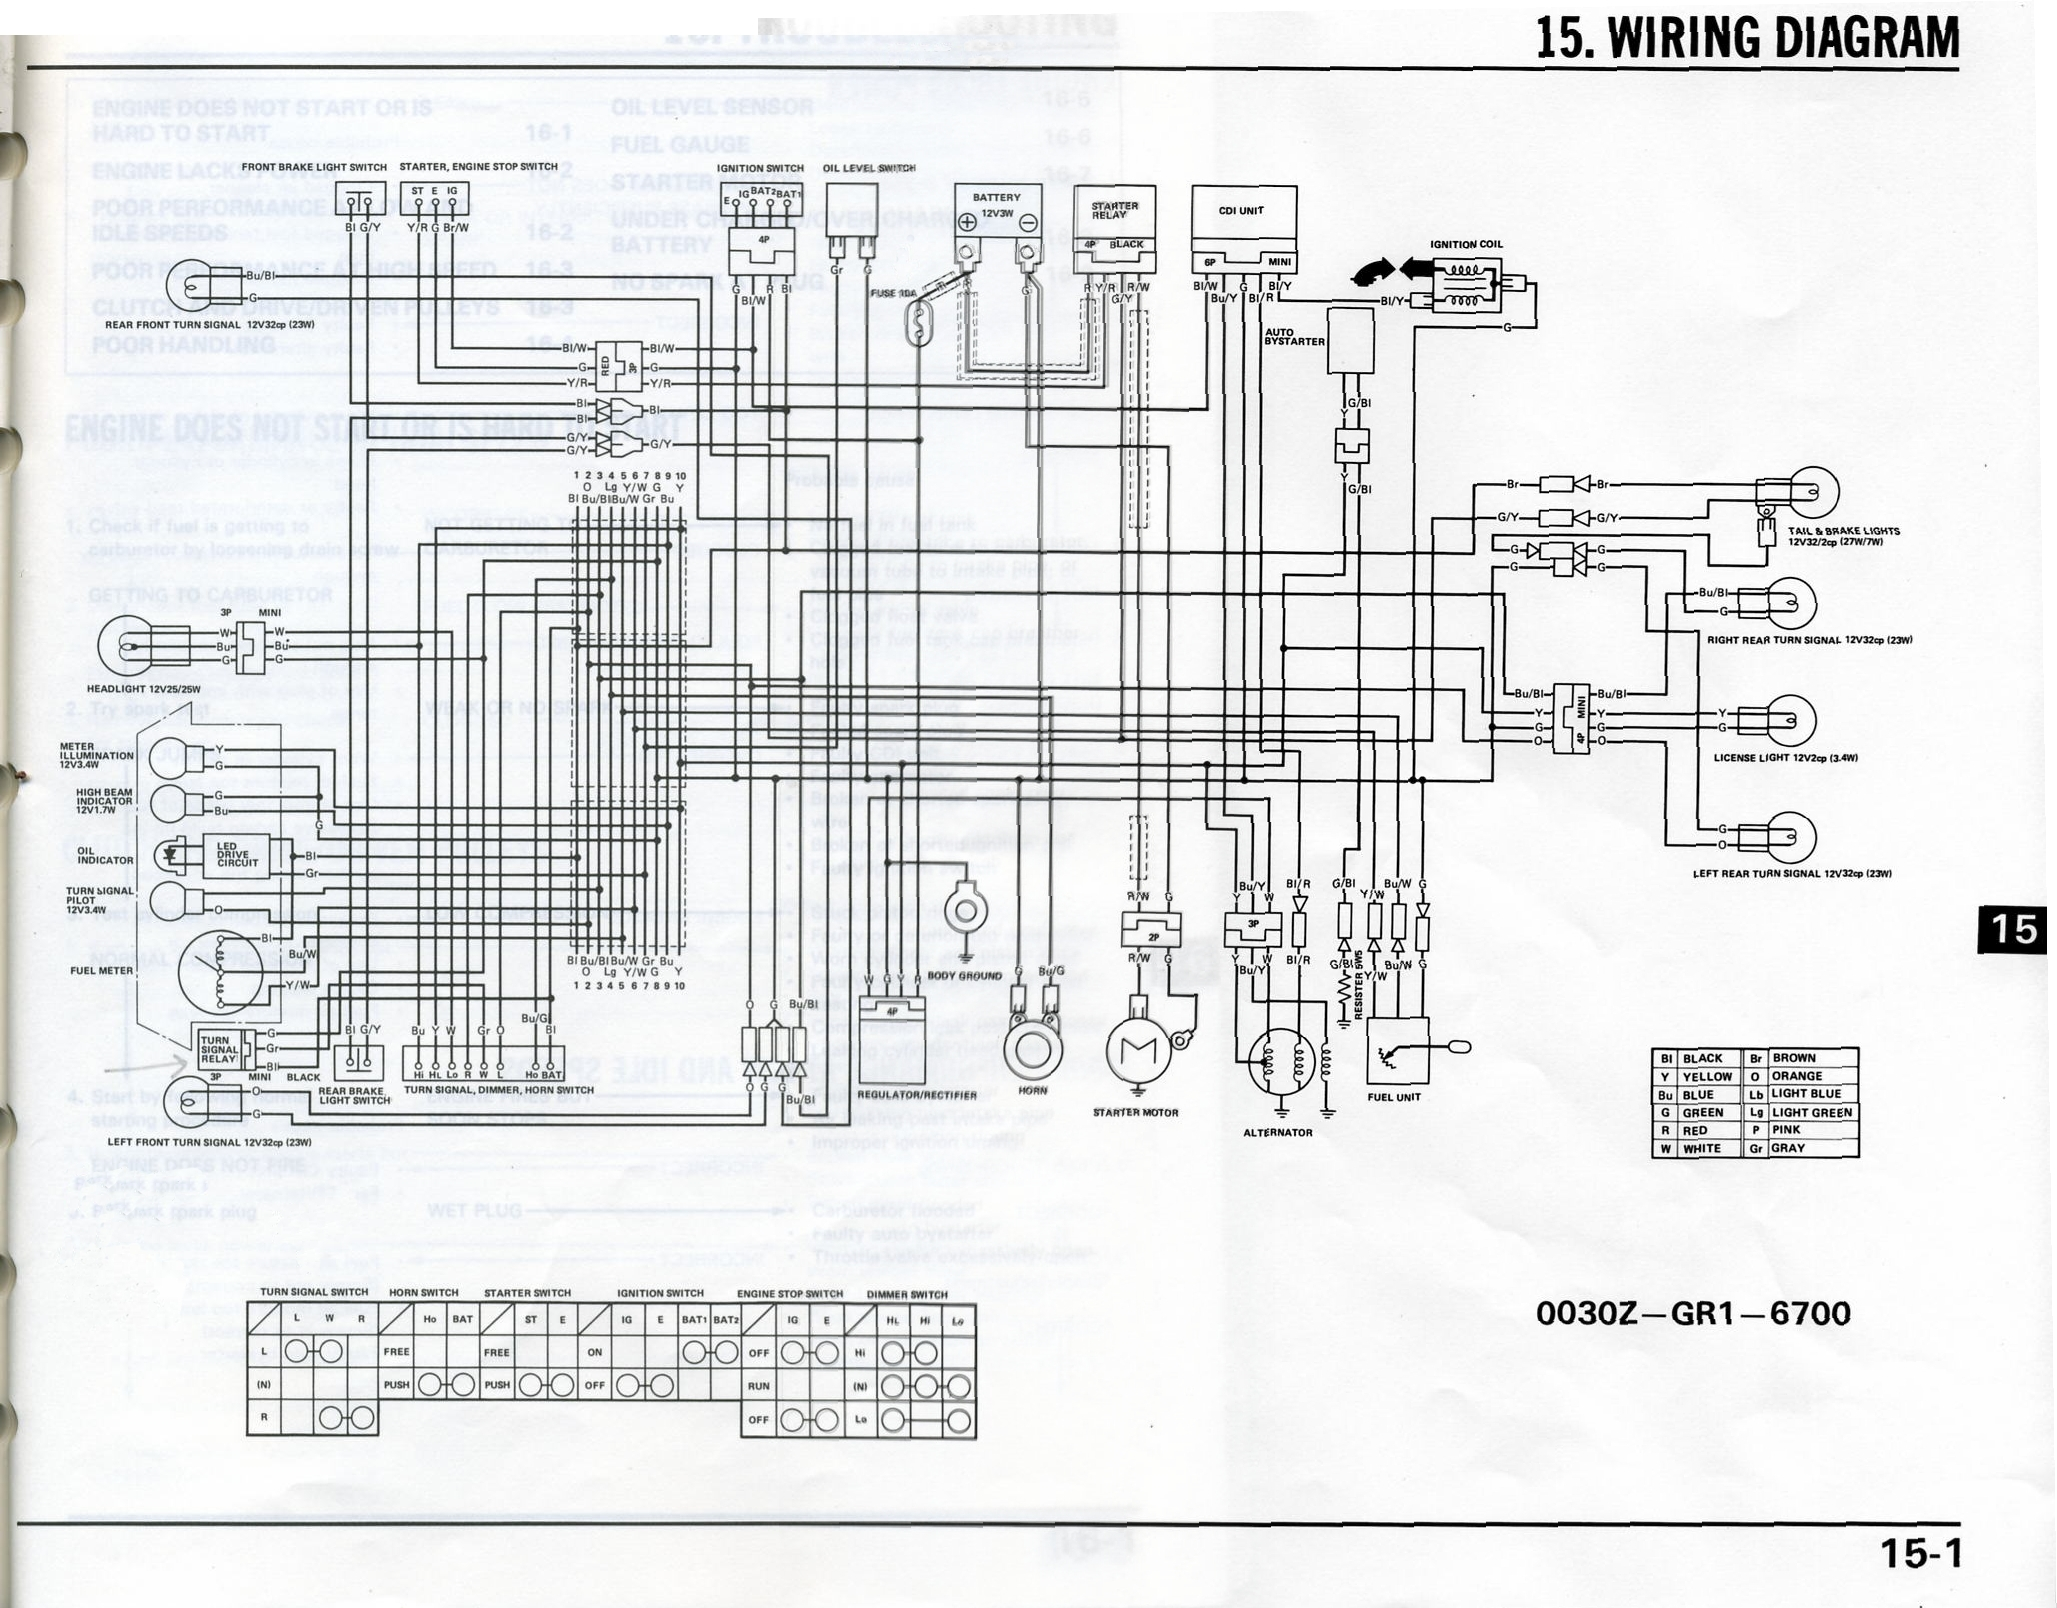 SE50_1987_Wire_Diagram honda spree wiring diagram 1987 honda shadow ignition wiring 1985 honda spree wiring diagram at gsmx.co